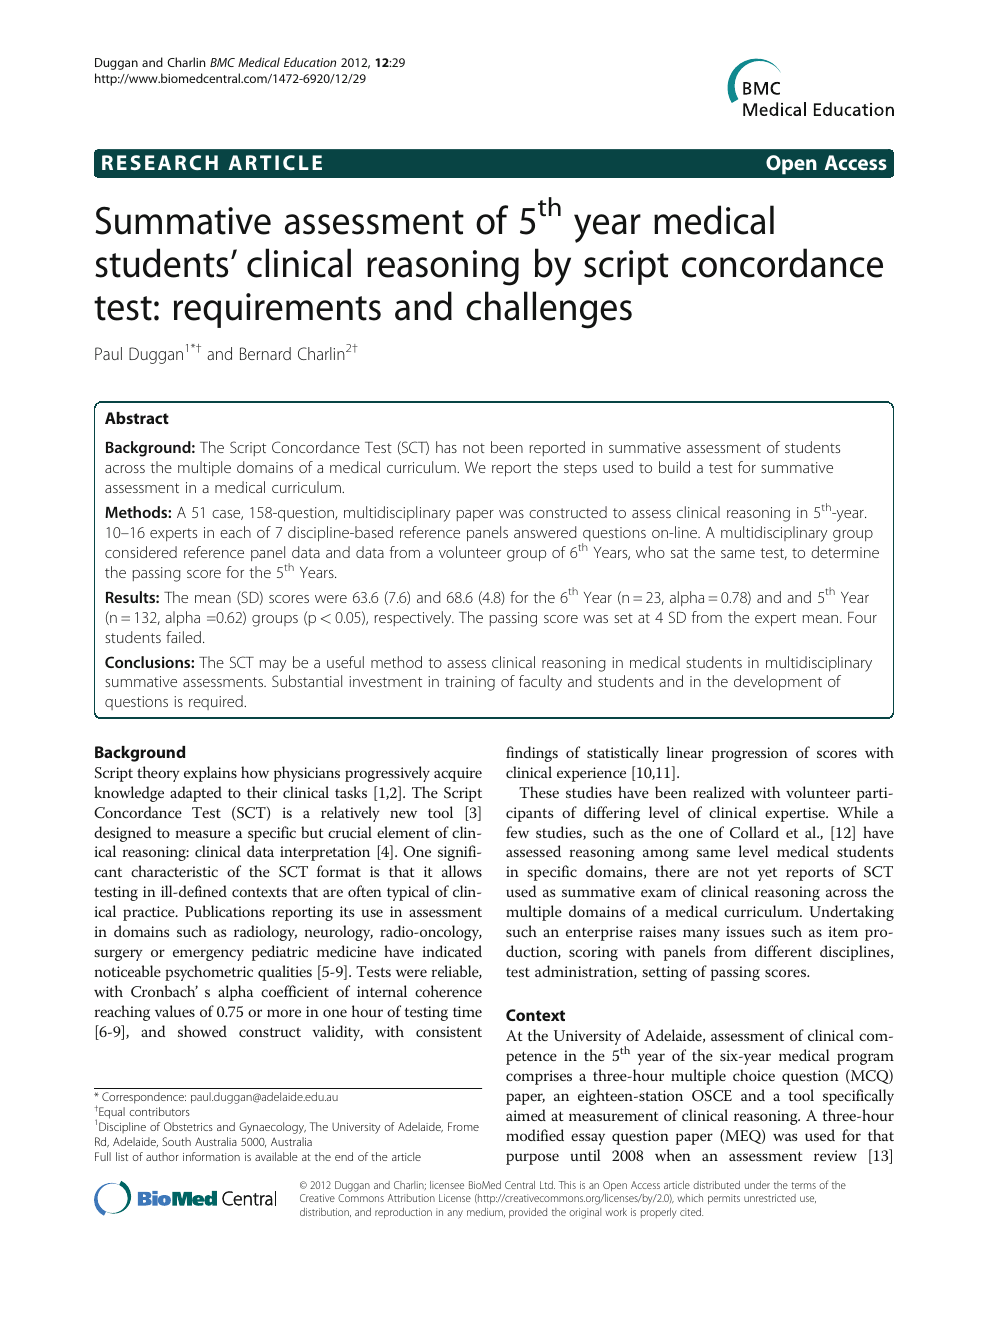 Summative assessment of 5th year medical students' clinical